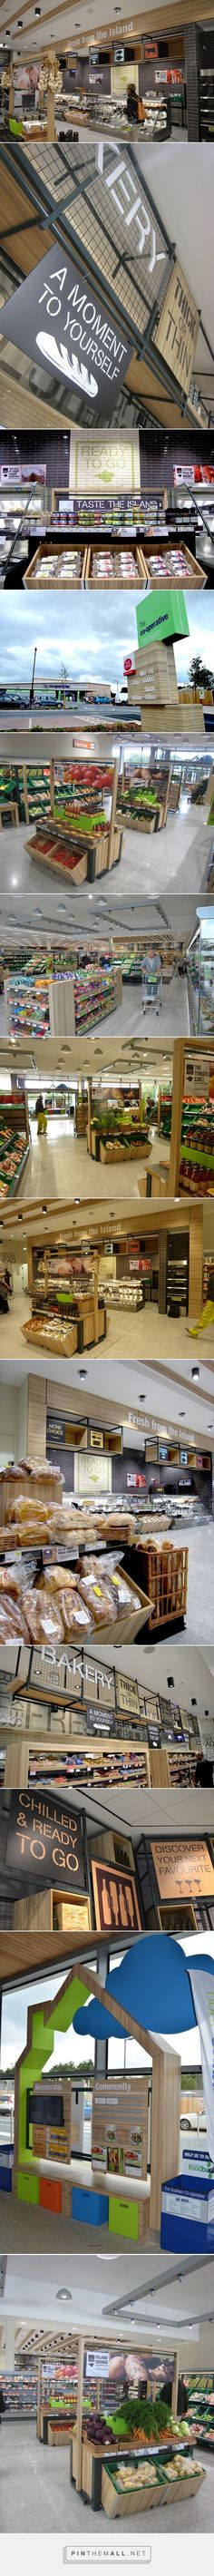 Design showcase: the Isle of Wight's local Co-Operative - Retail Design World…